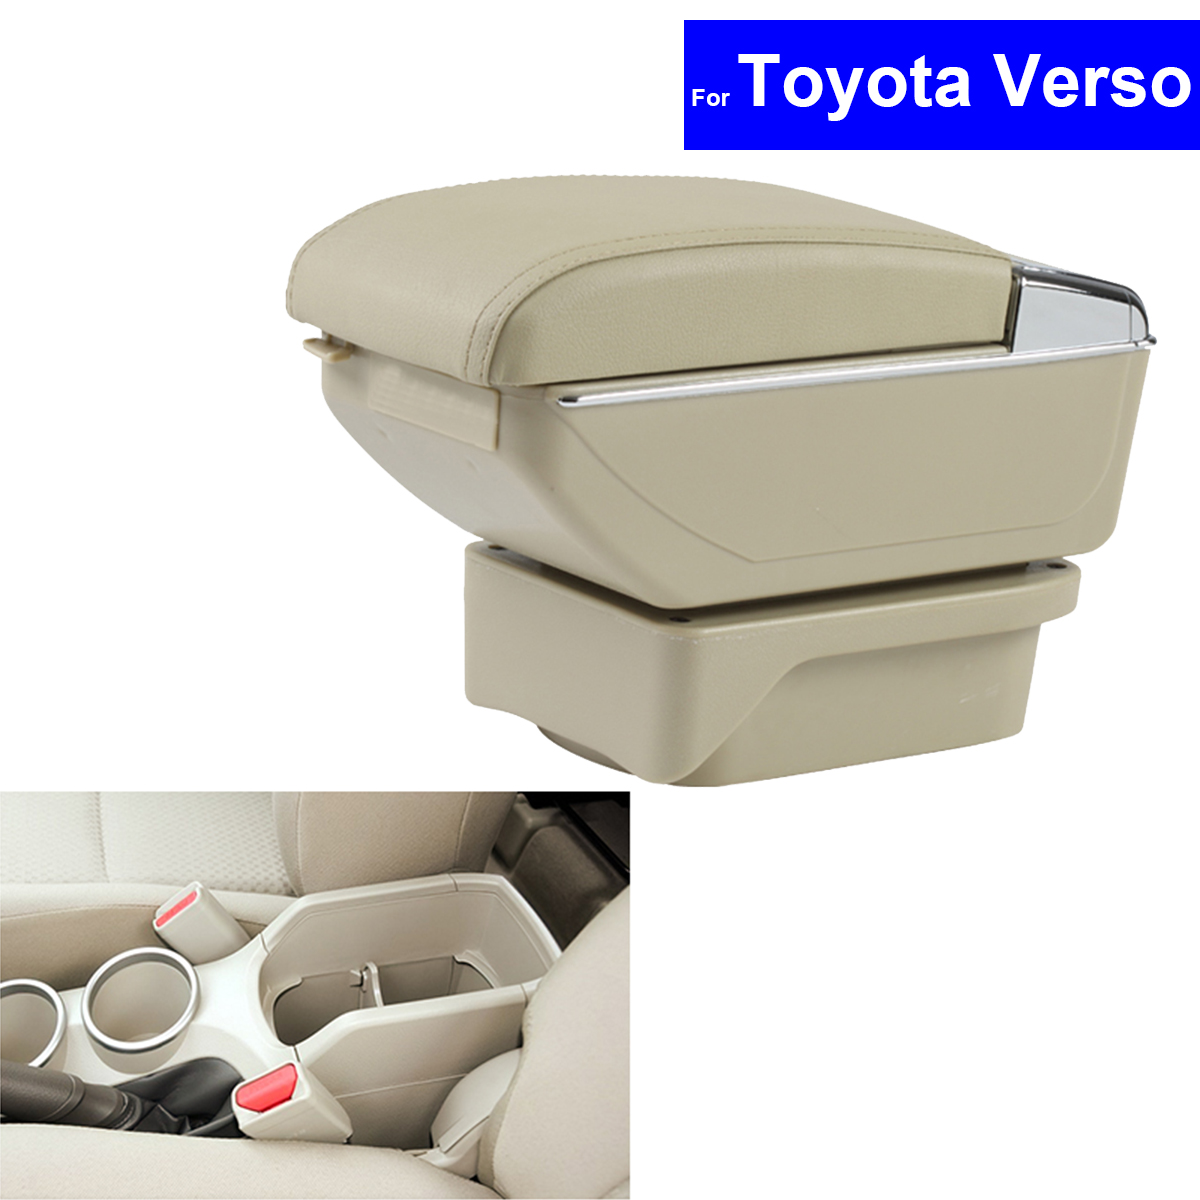 ФОТО Leather Center Console Armrest Storage Box for Toyota Verso 2011 2012 2013 2014 2015 Armrests Free Shipping